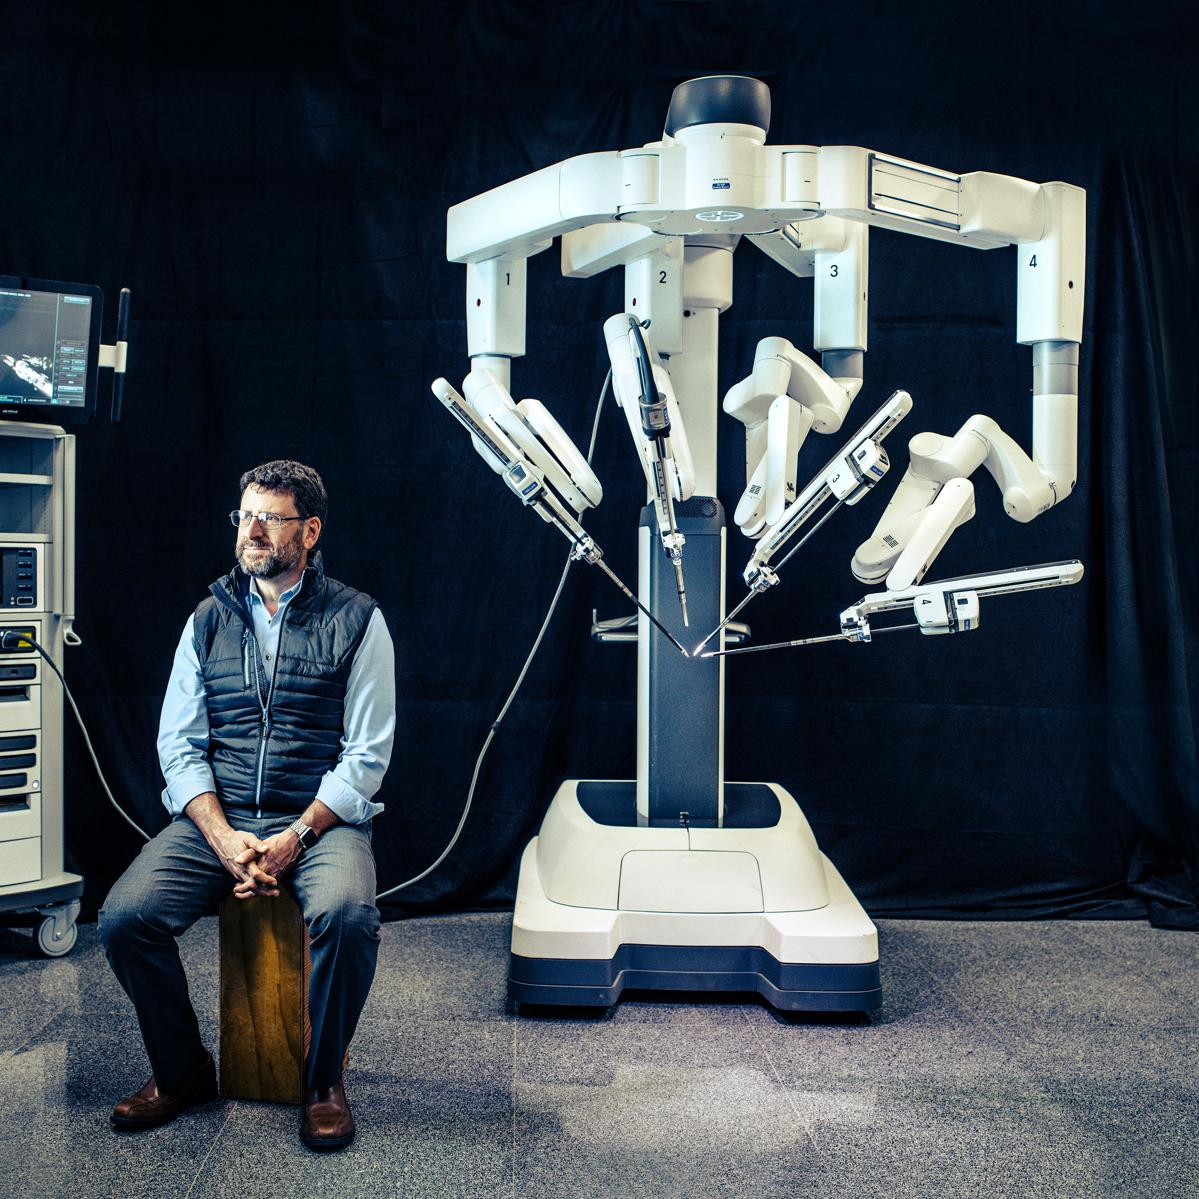 Robot Wars: $60B Intuitive Surgical Dominated Its Market For 20 Years. Now Rivals Like Alphabet Are Moving In.